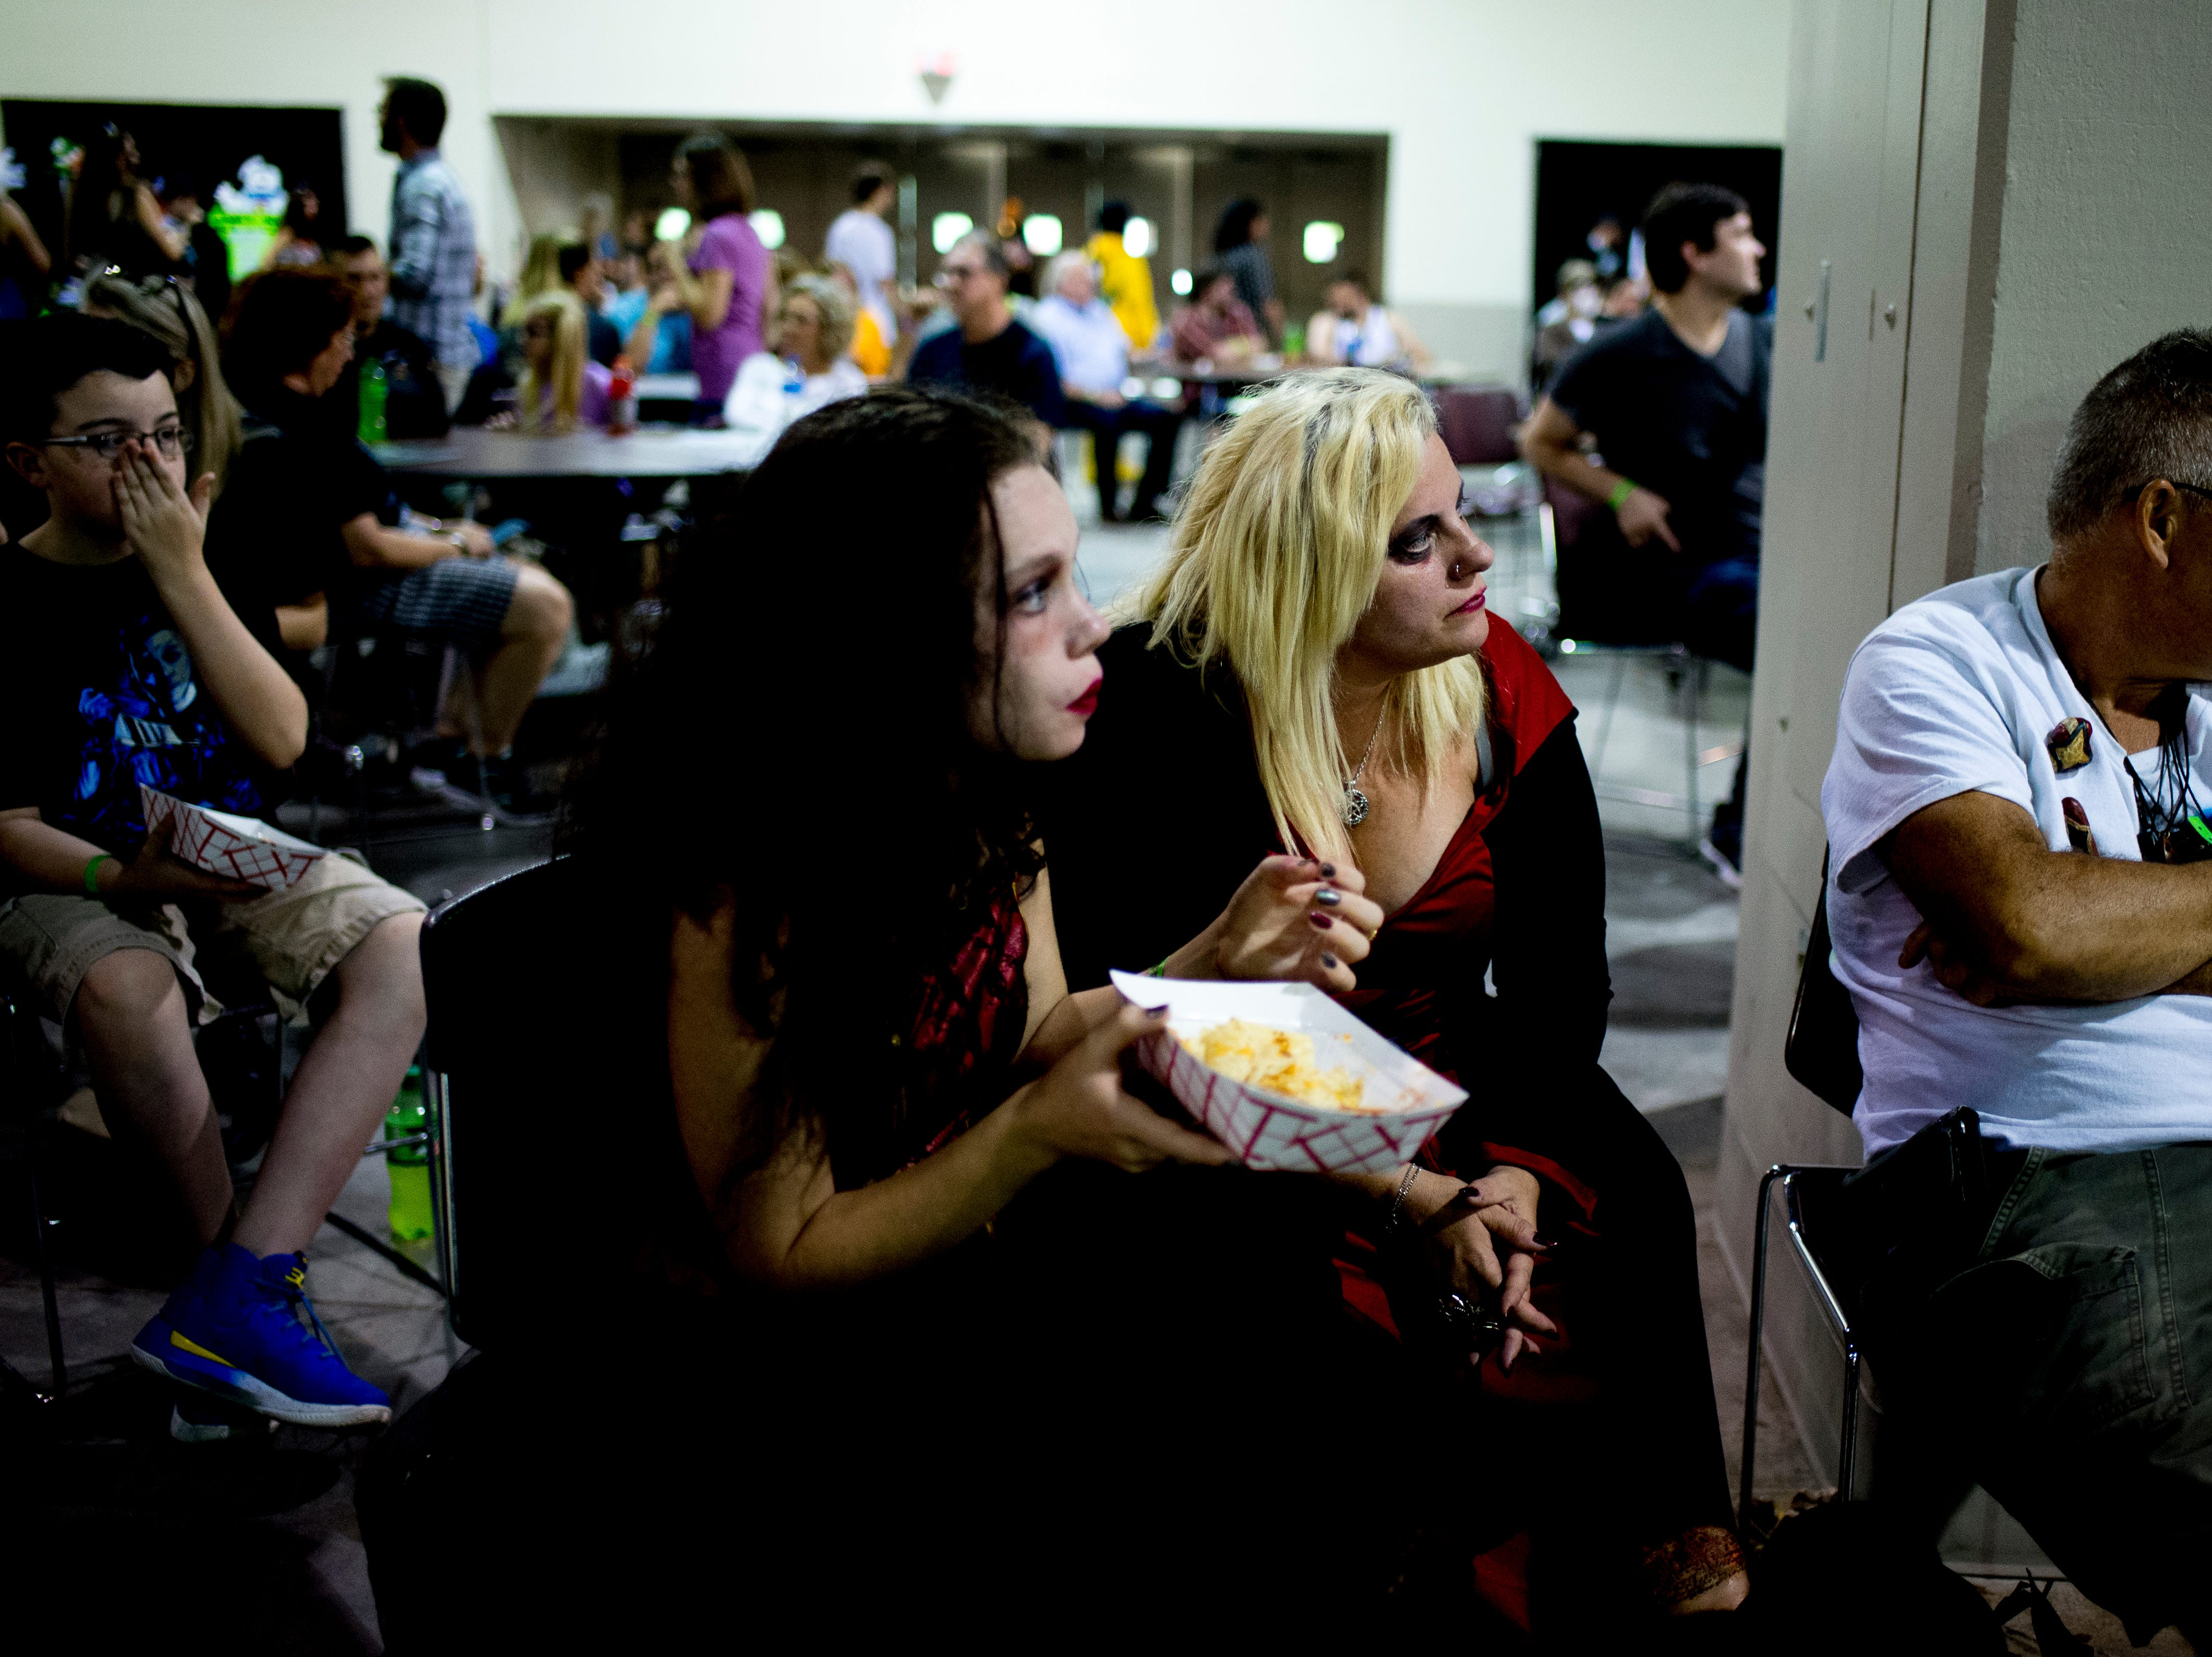 Attendees watch a performance during the annual Knoxville CreepyCon at the World's Fair Exhibition Hall in Knoxville, Tennessee on Saturday, August 25, 2018. The event featured performers, a zombie beauty contest, workshops and a wide selection of vendors.